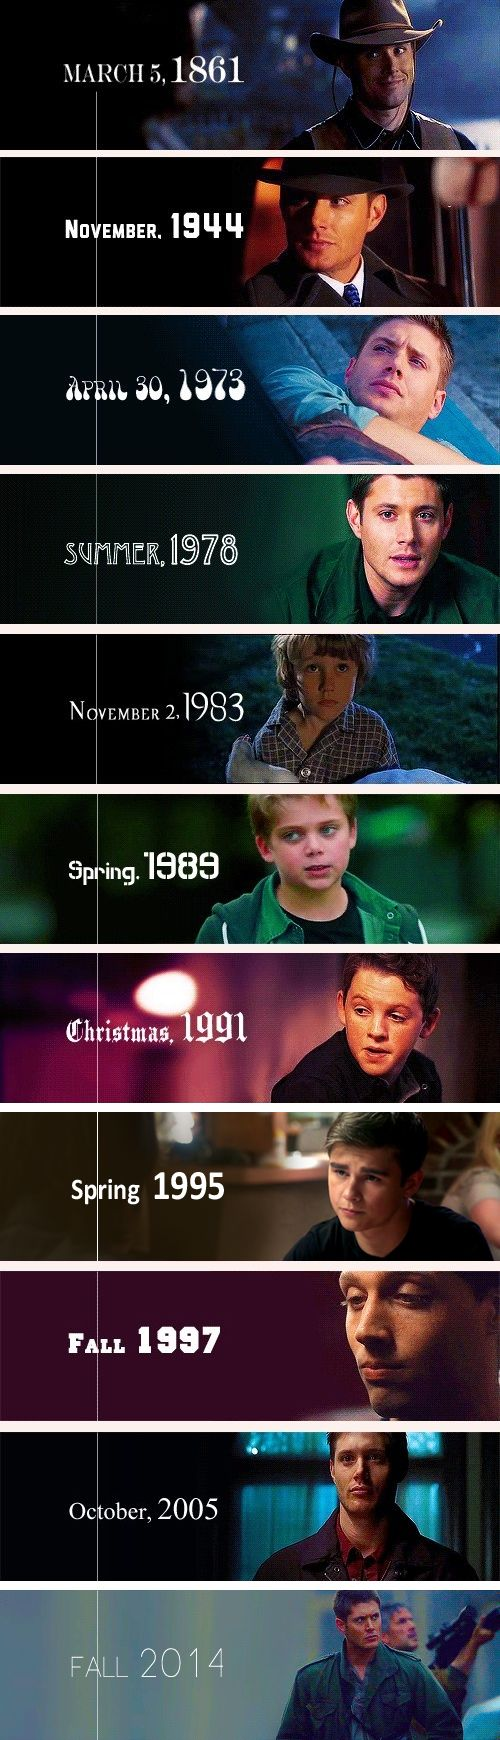 Dean Winchester timeline.                                                                                                                                                                                 More